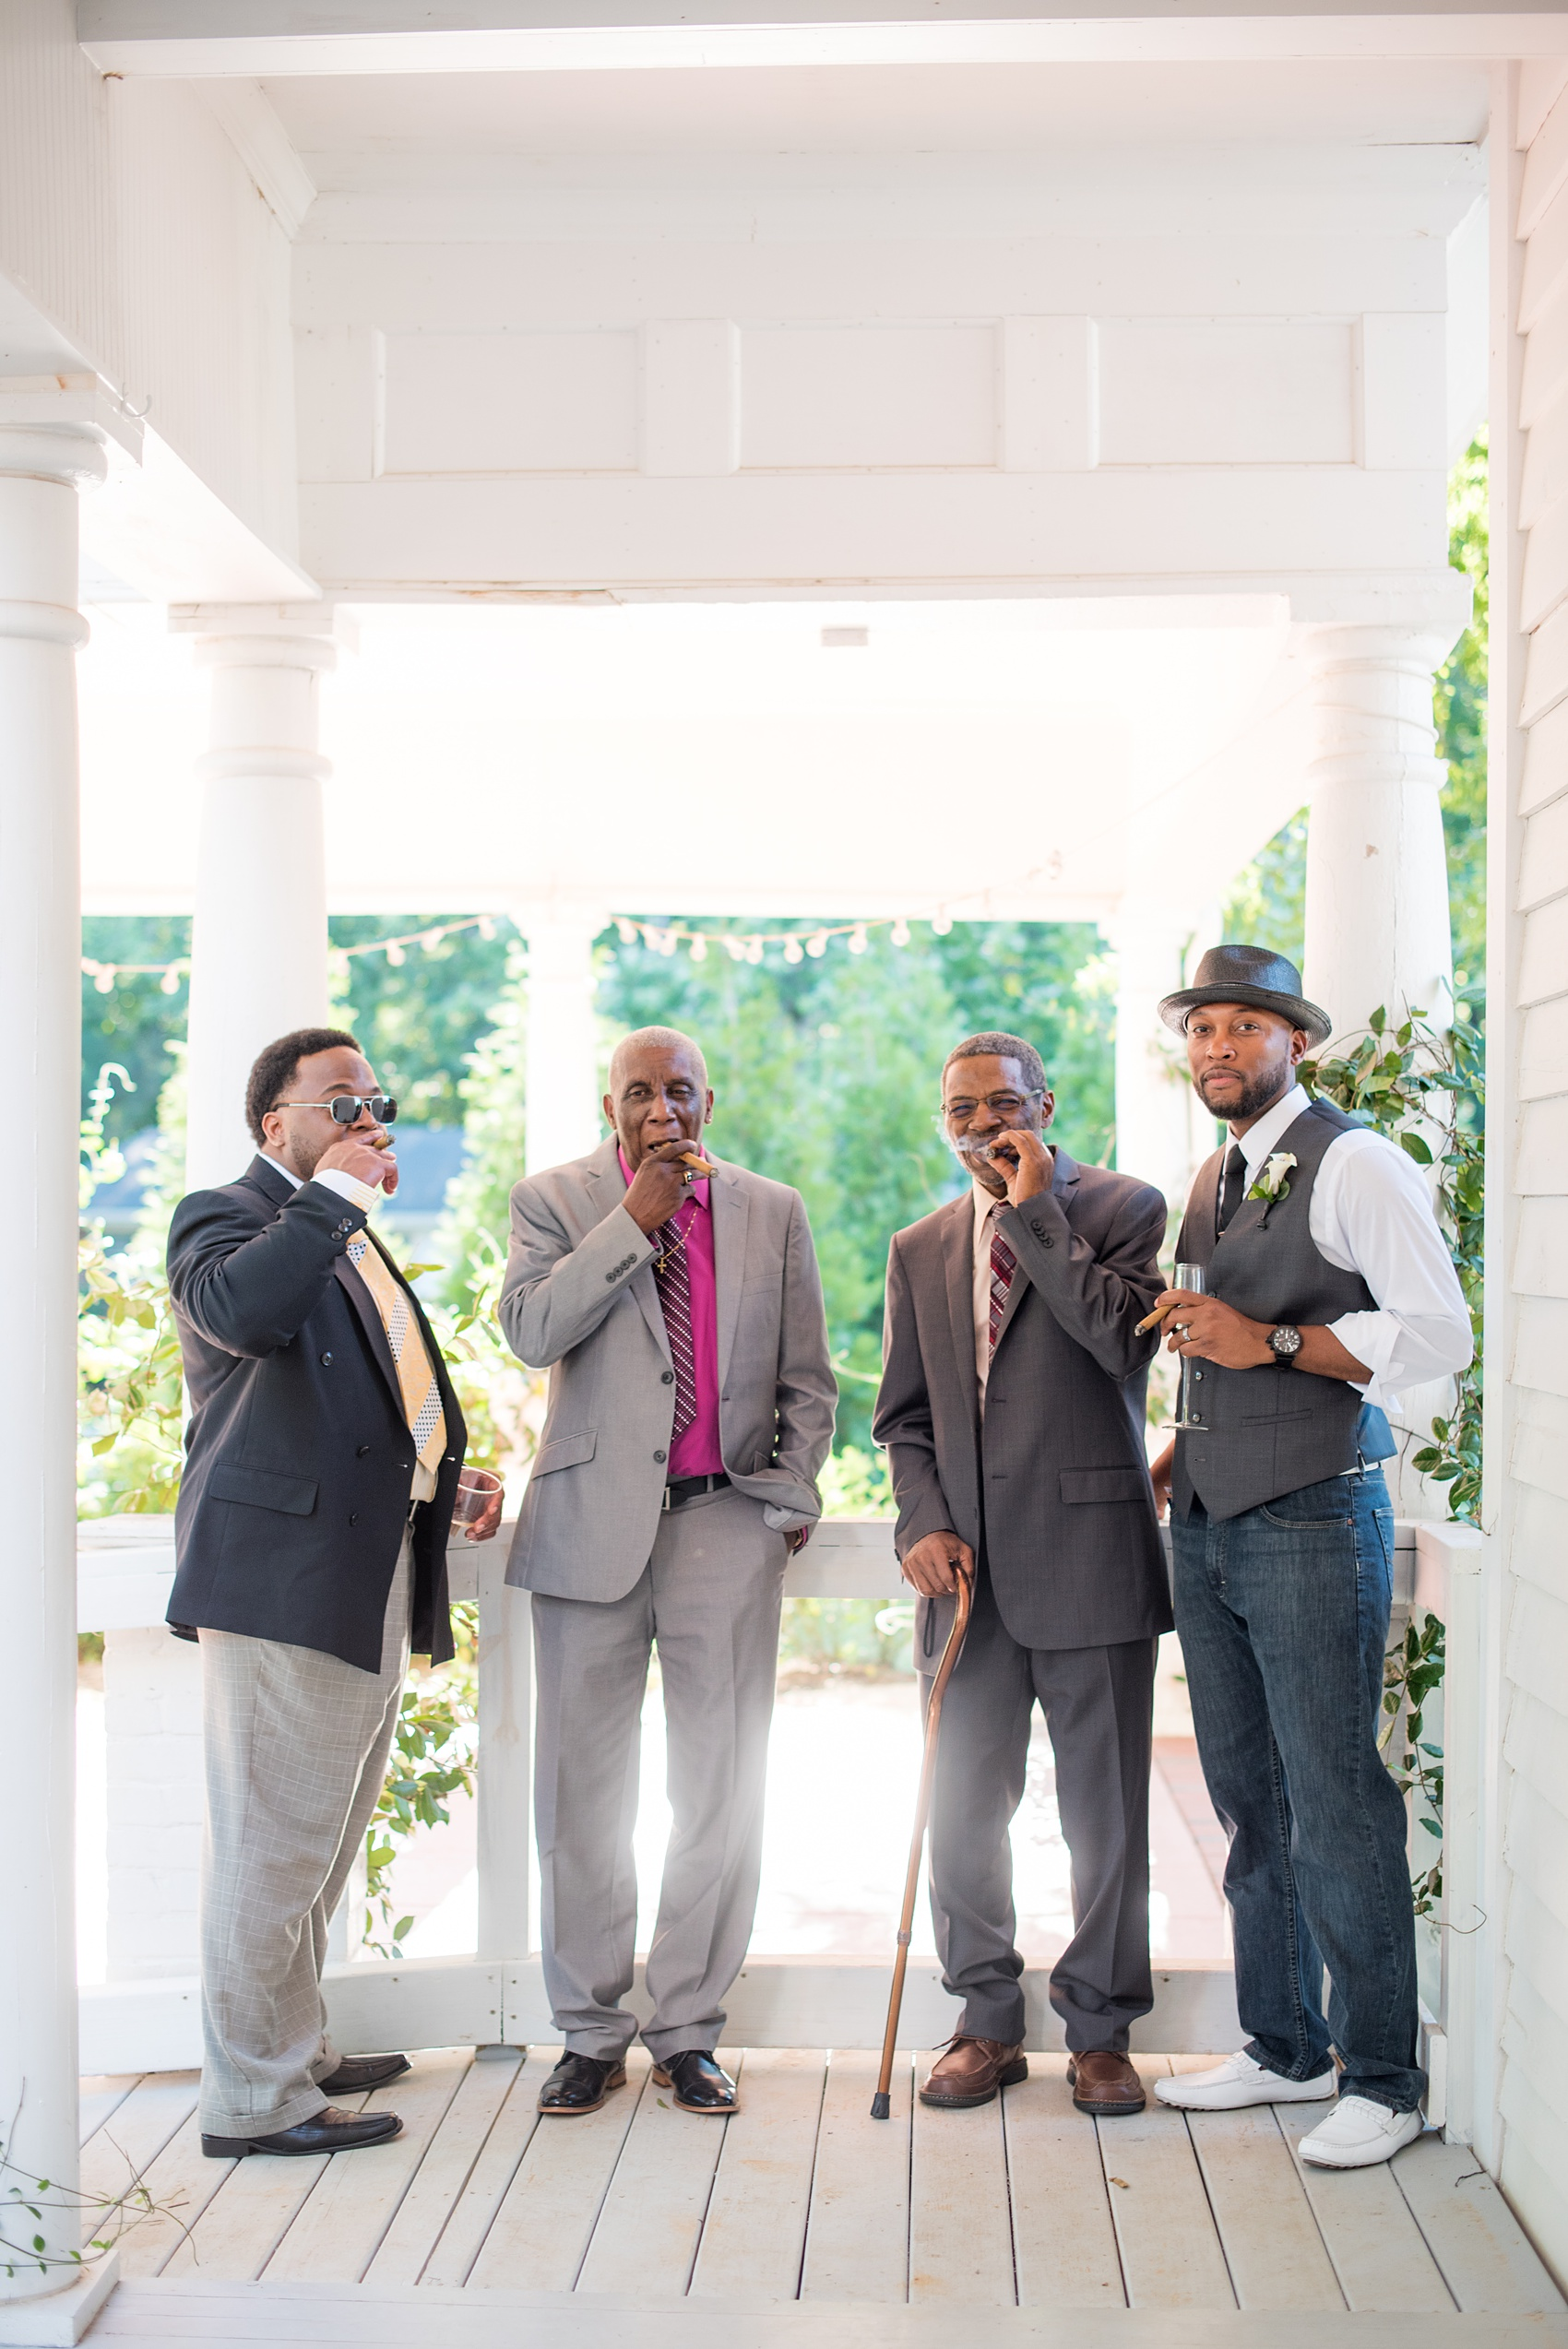 Mikkel Paige Photography pictures of a wedding at Leslie-Alford Mim's House in North Carolina for a Mad Dash Weddings event. Photo of the groom and men smoking cigars on the venue porch.